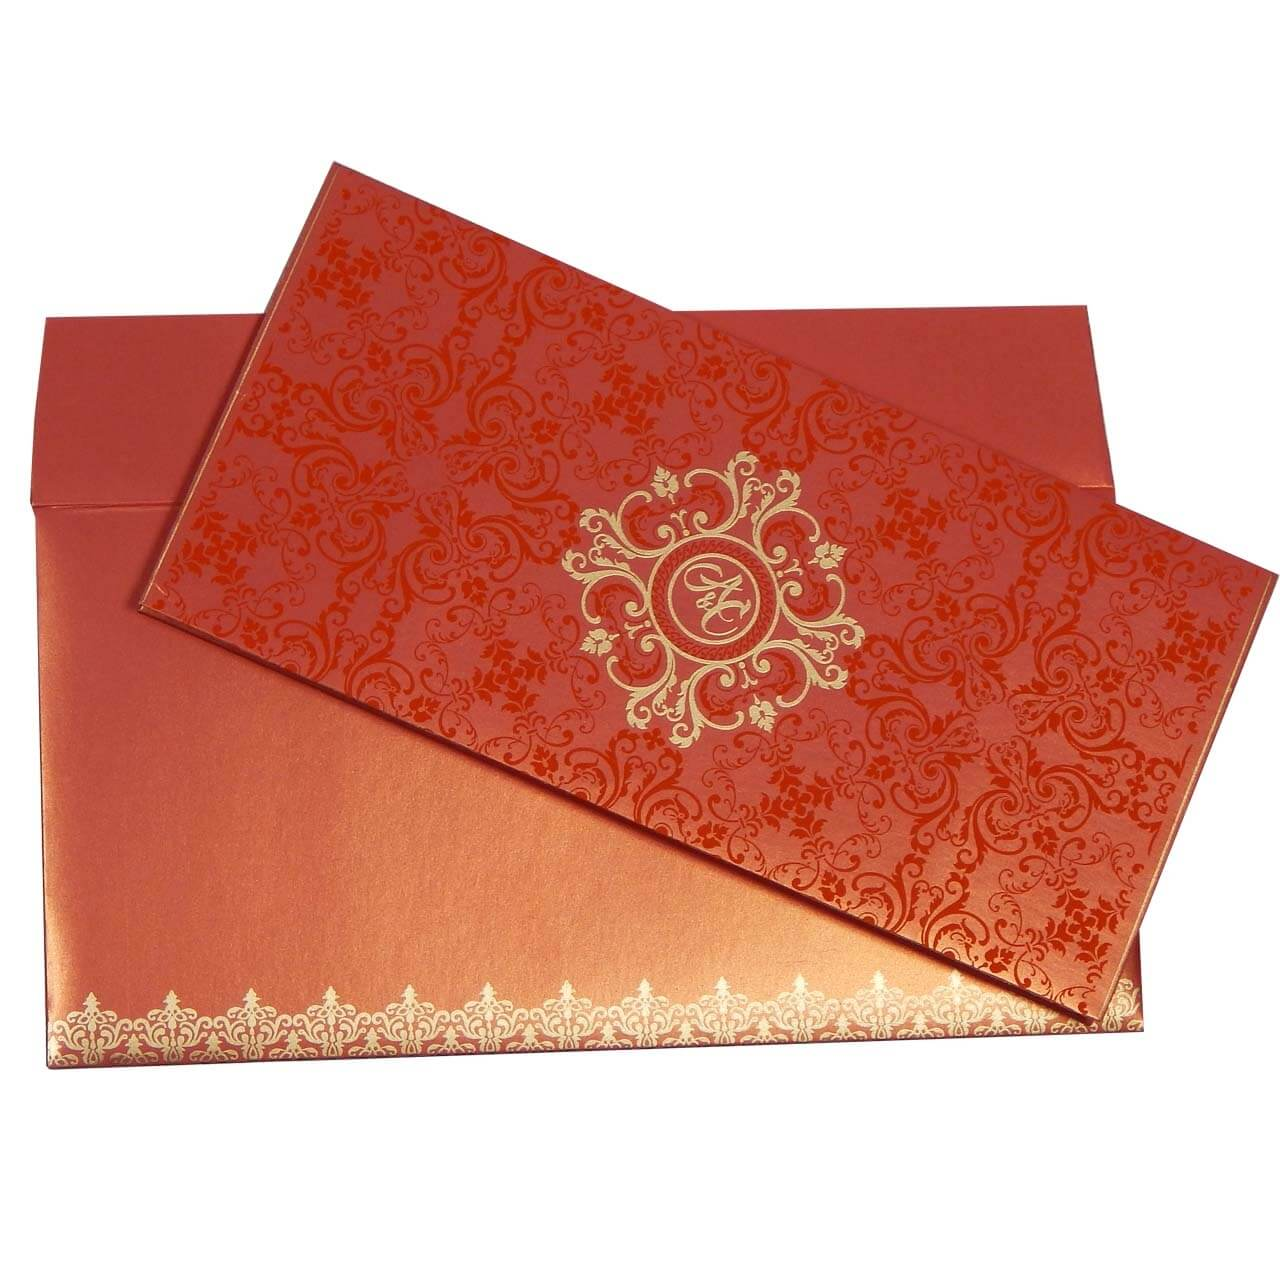 SIKH WEDDING CARDS T3-1113 Full View